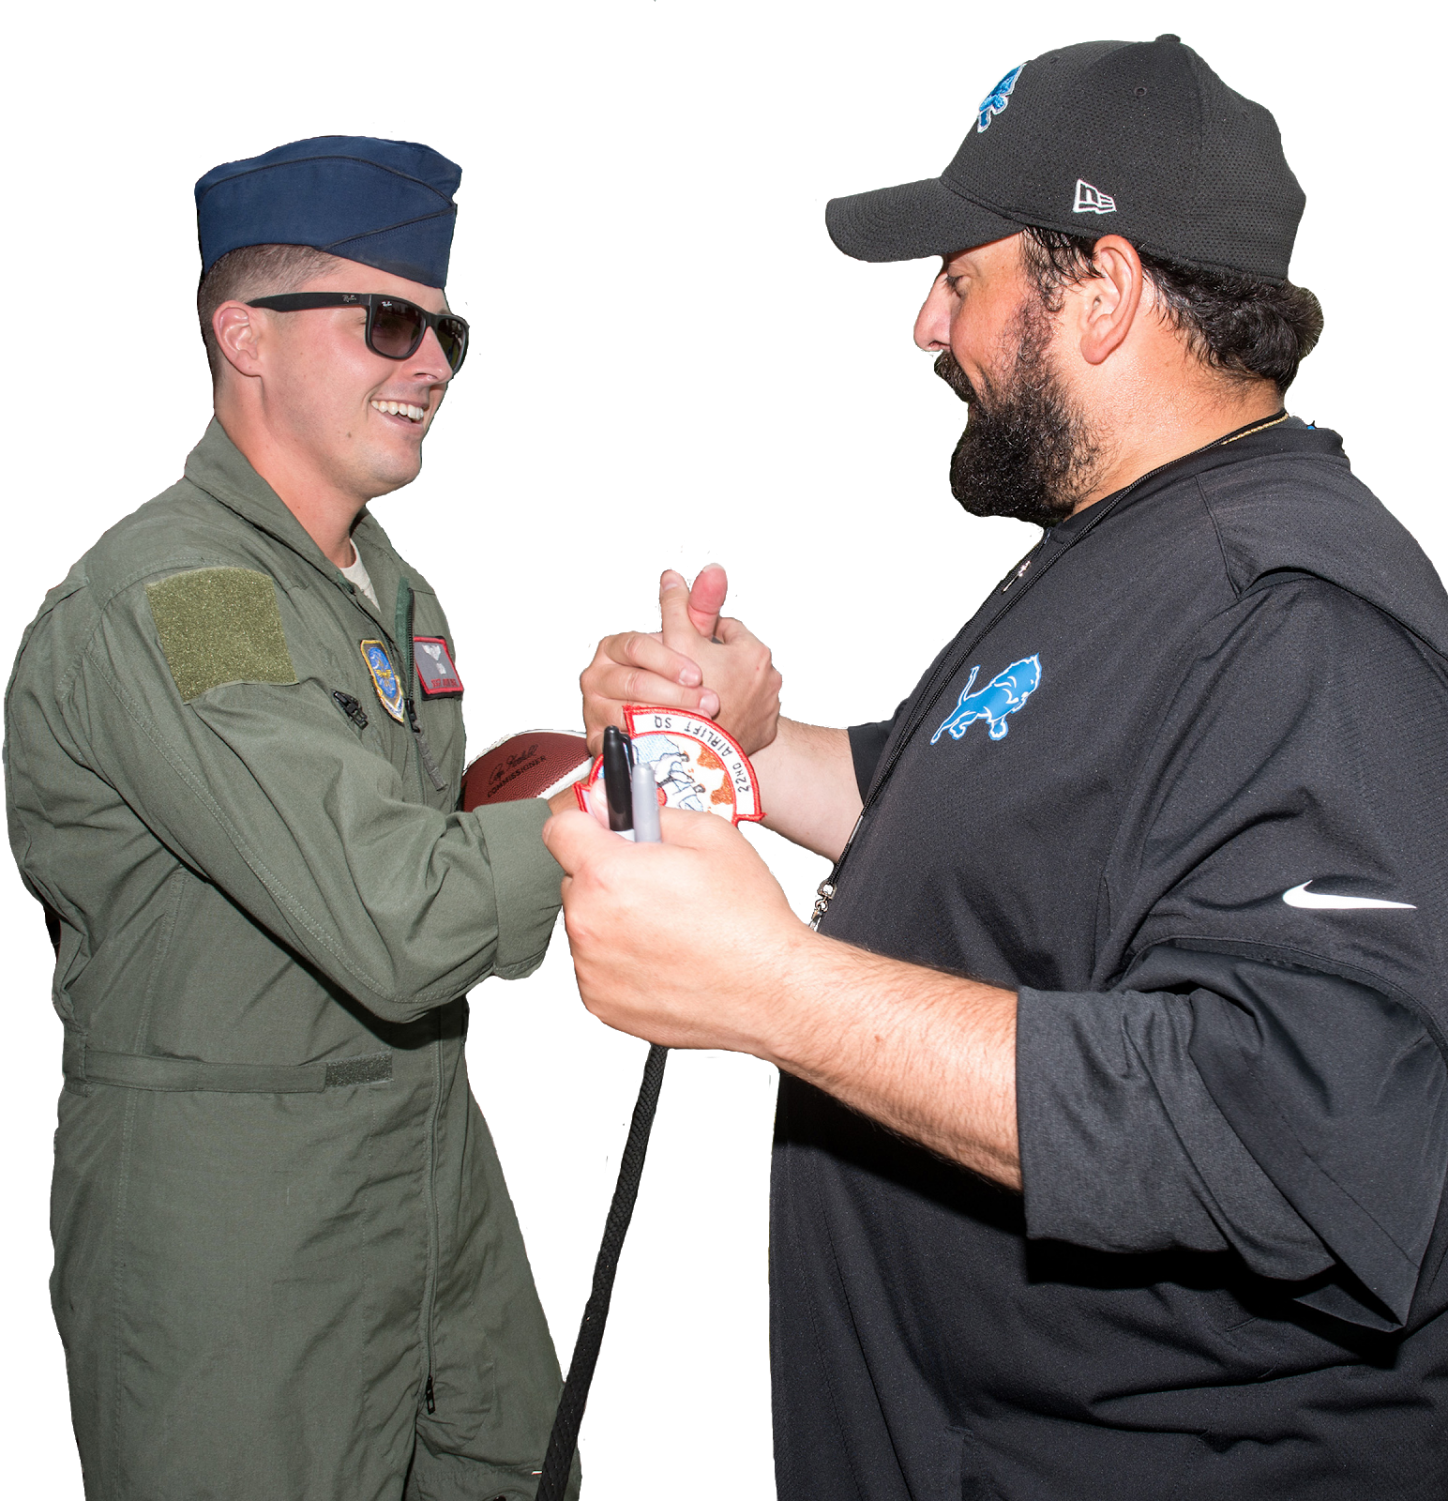 Lions coach Matt Patricia shakes hands with active duty soldier.